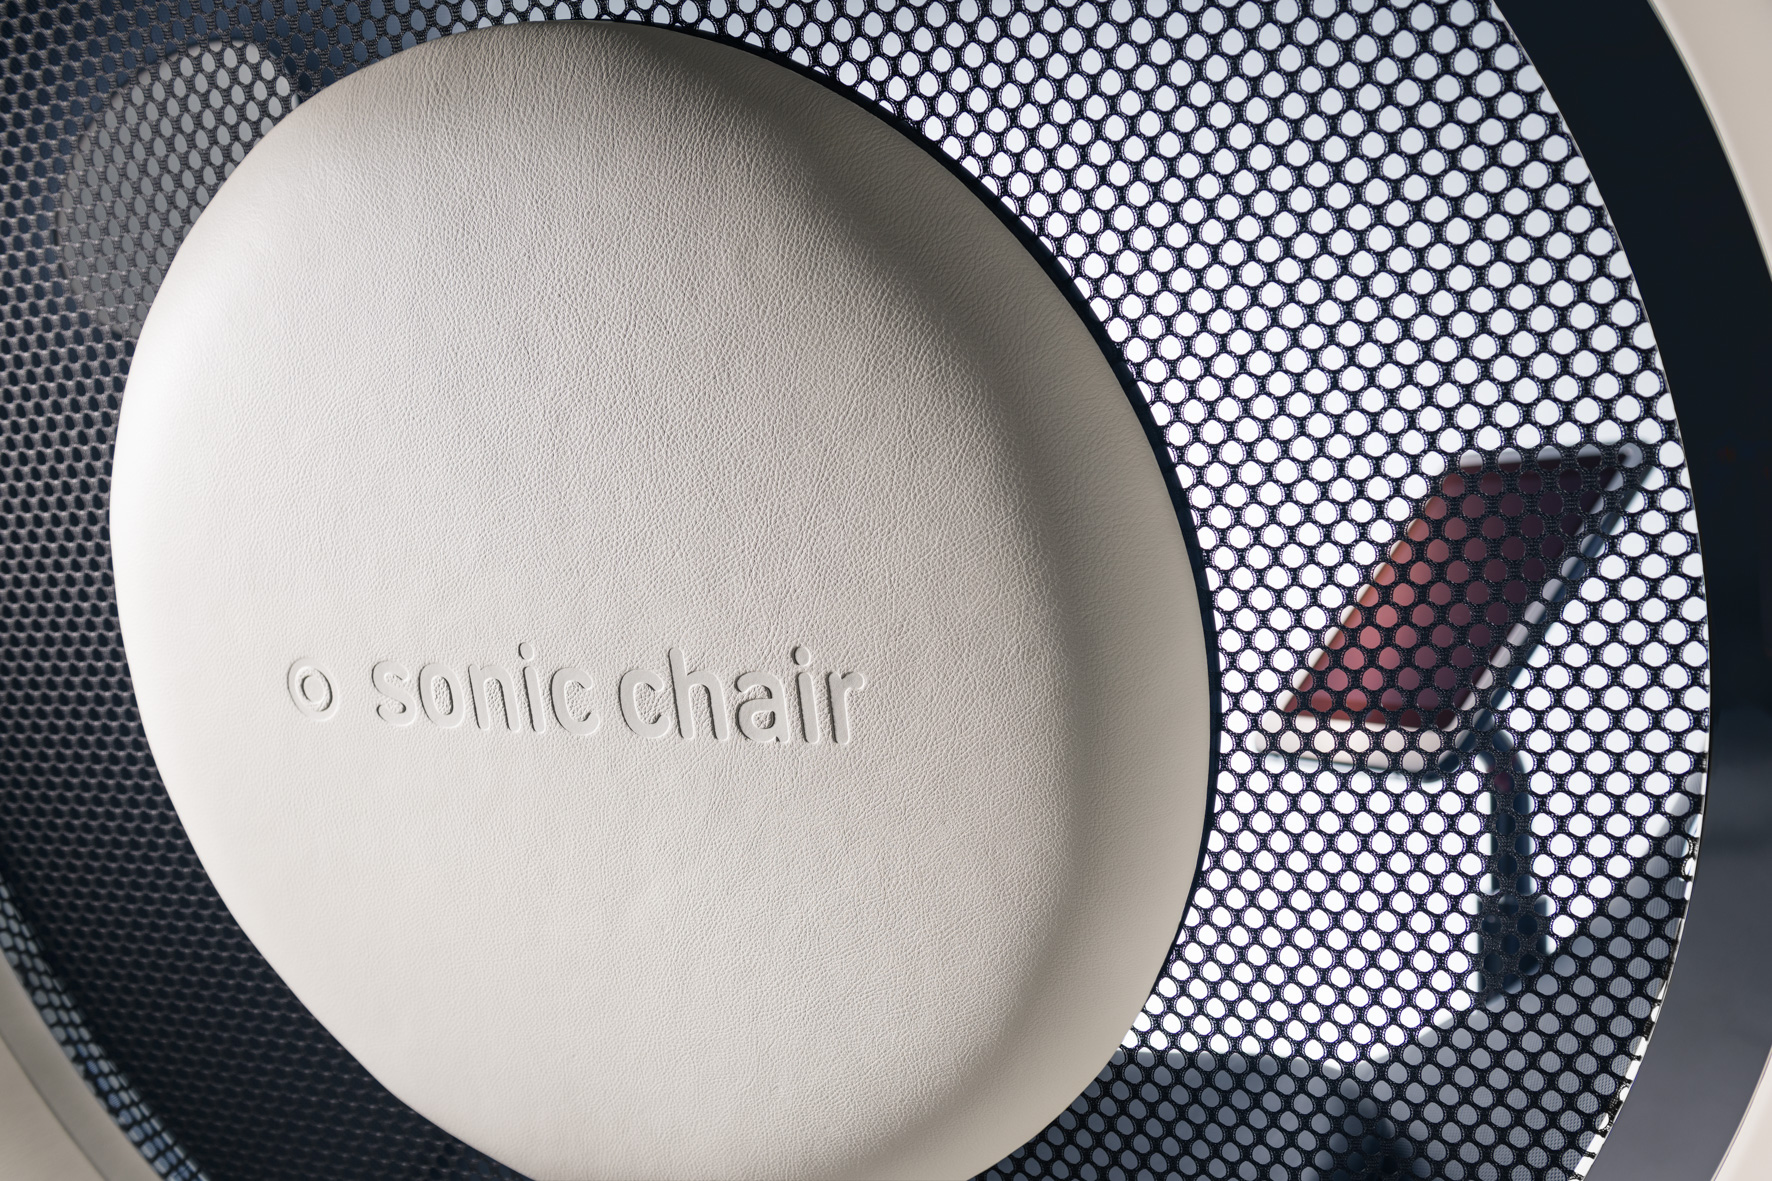 Sonic Chair Details